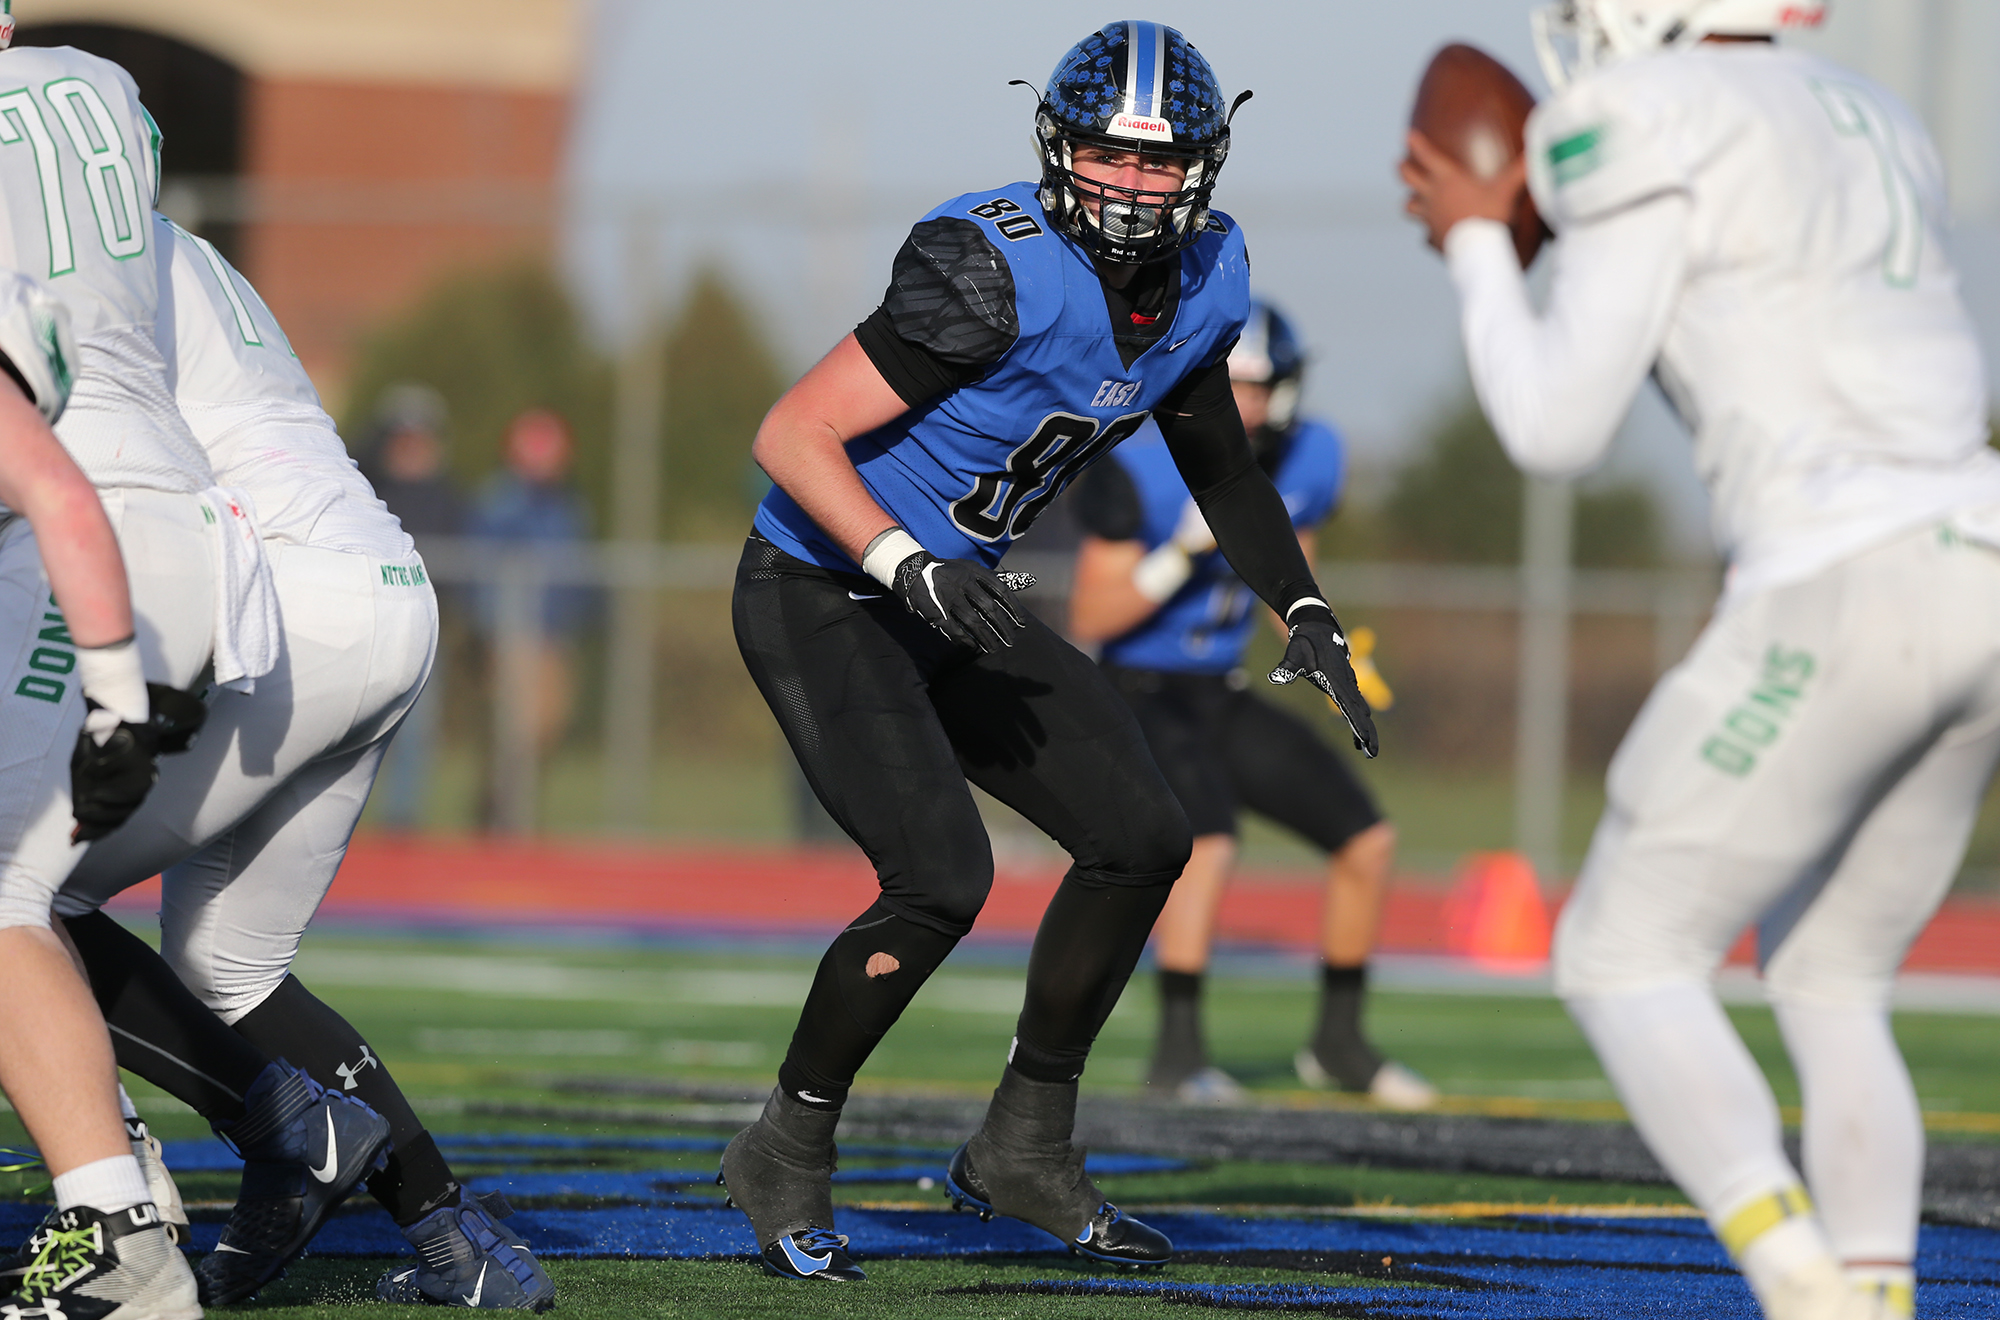 Lincoln-Way East's Sean McLaughlin (80) rushes Notre Dame's quarterback.